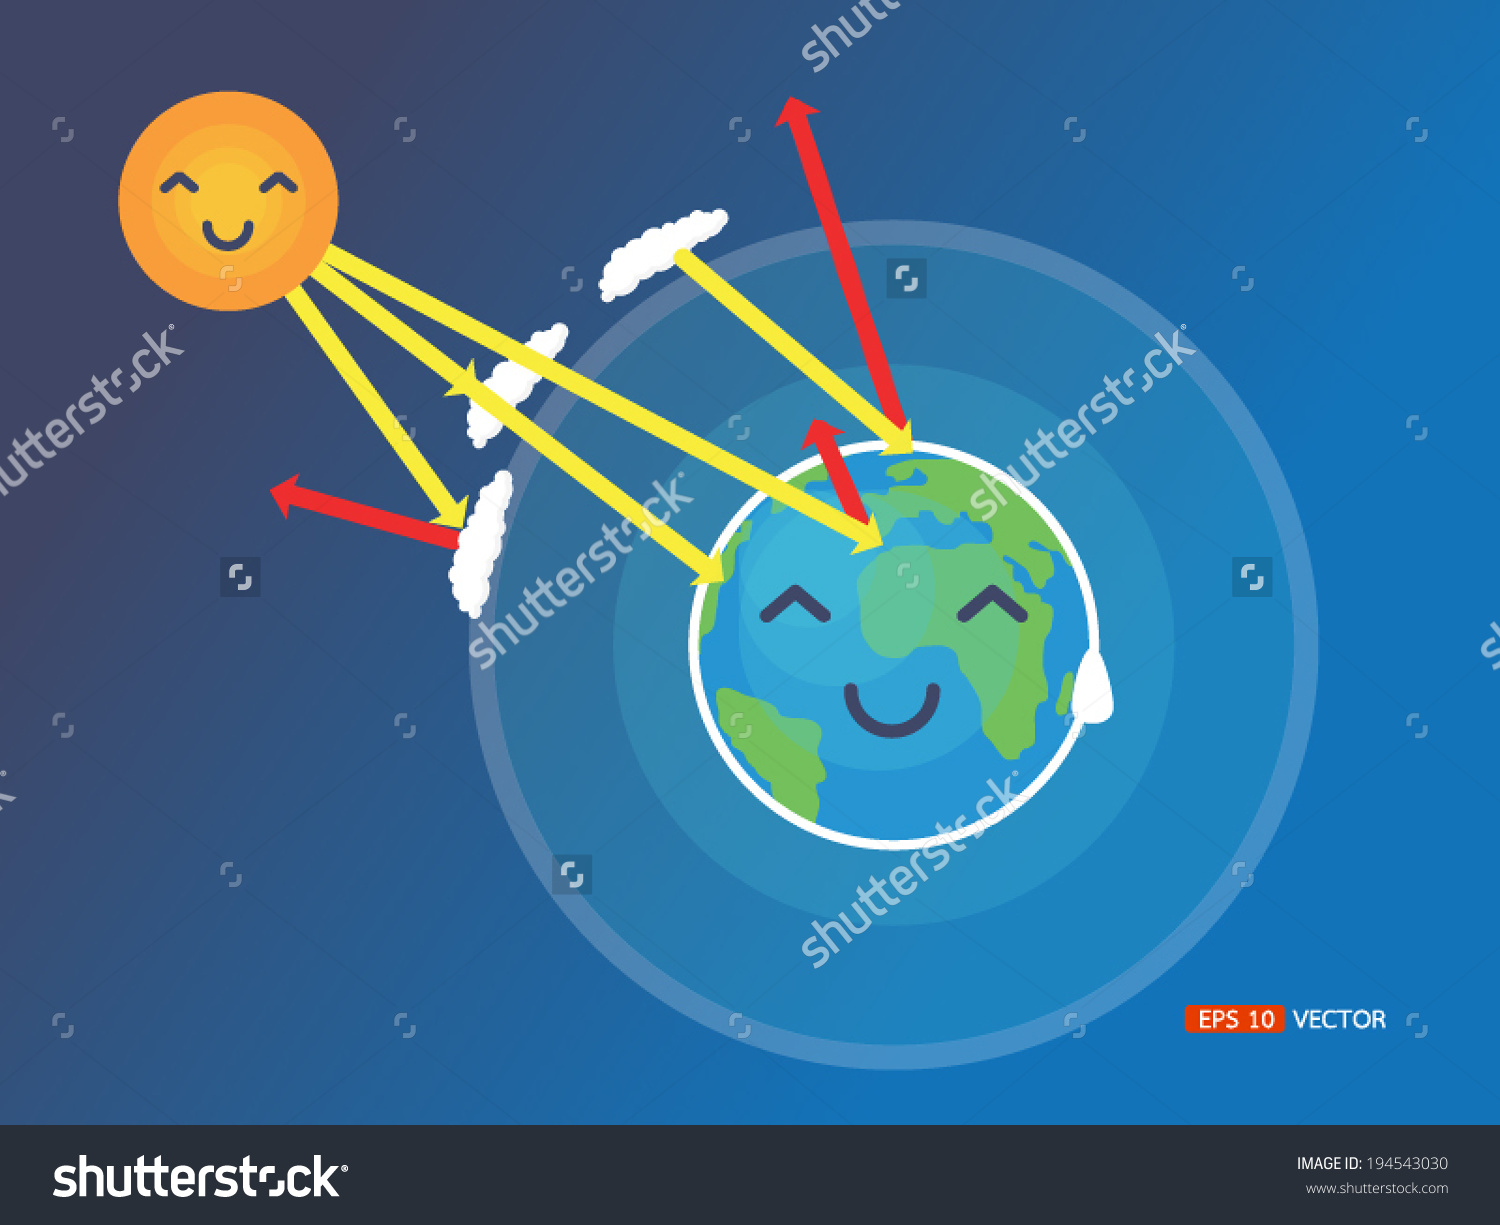 The earth's atmosphere clipart #16